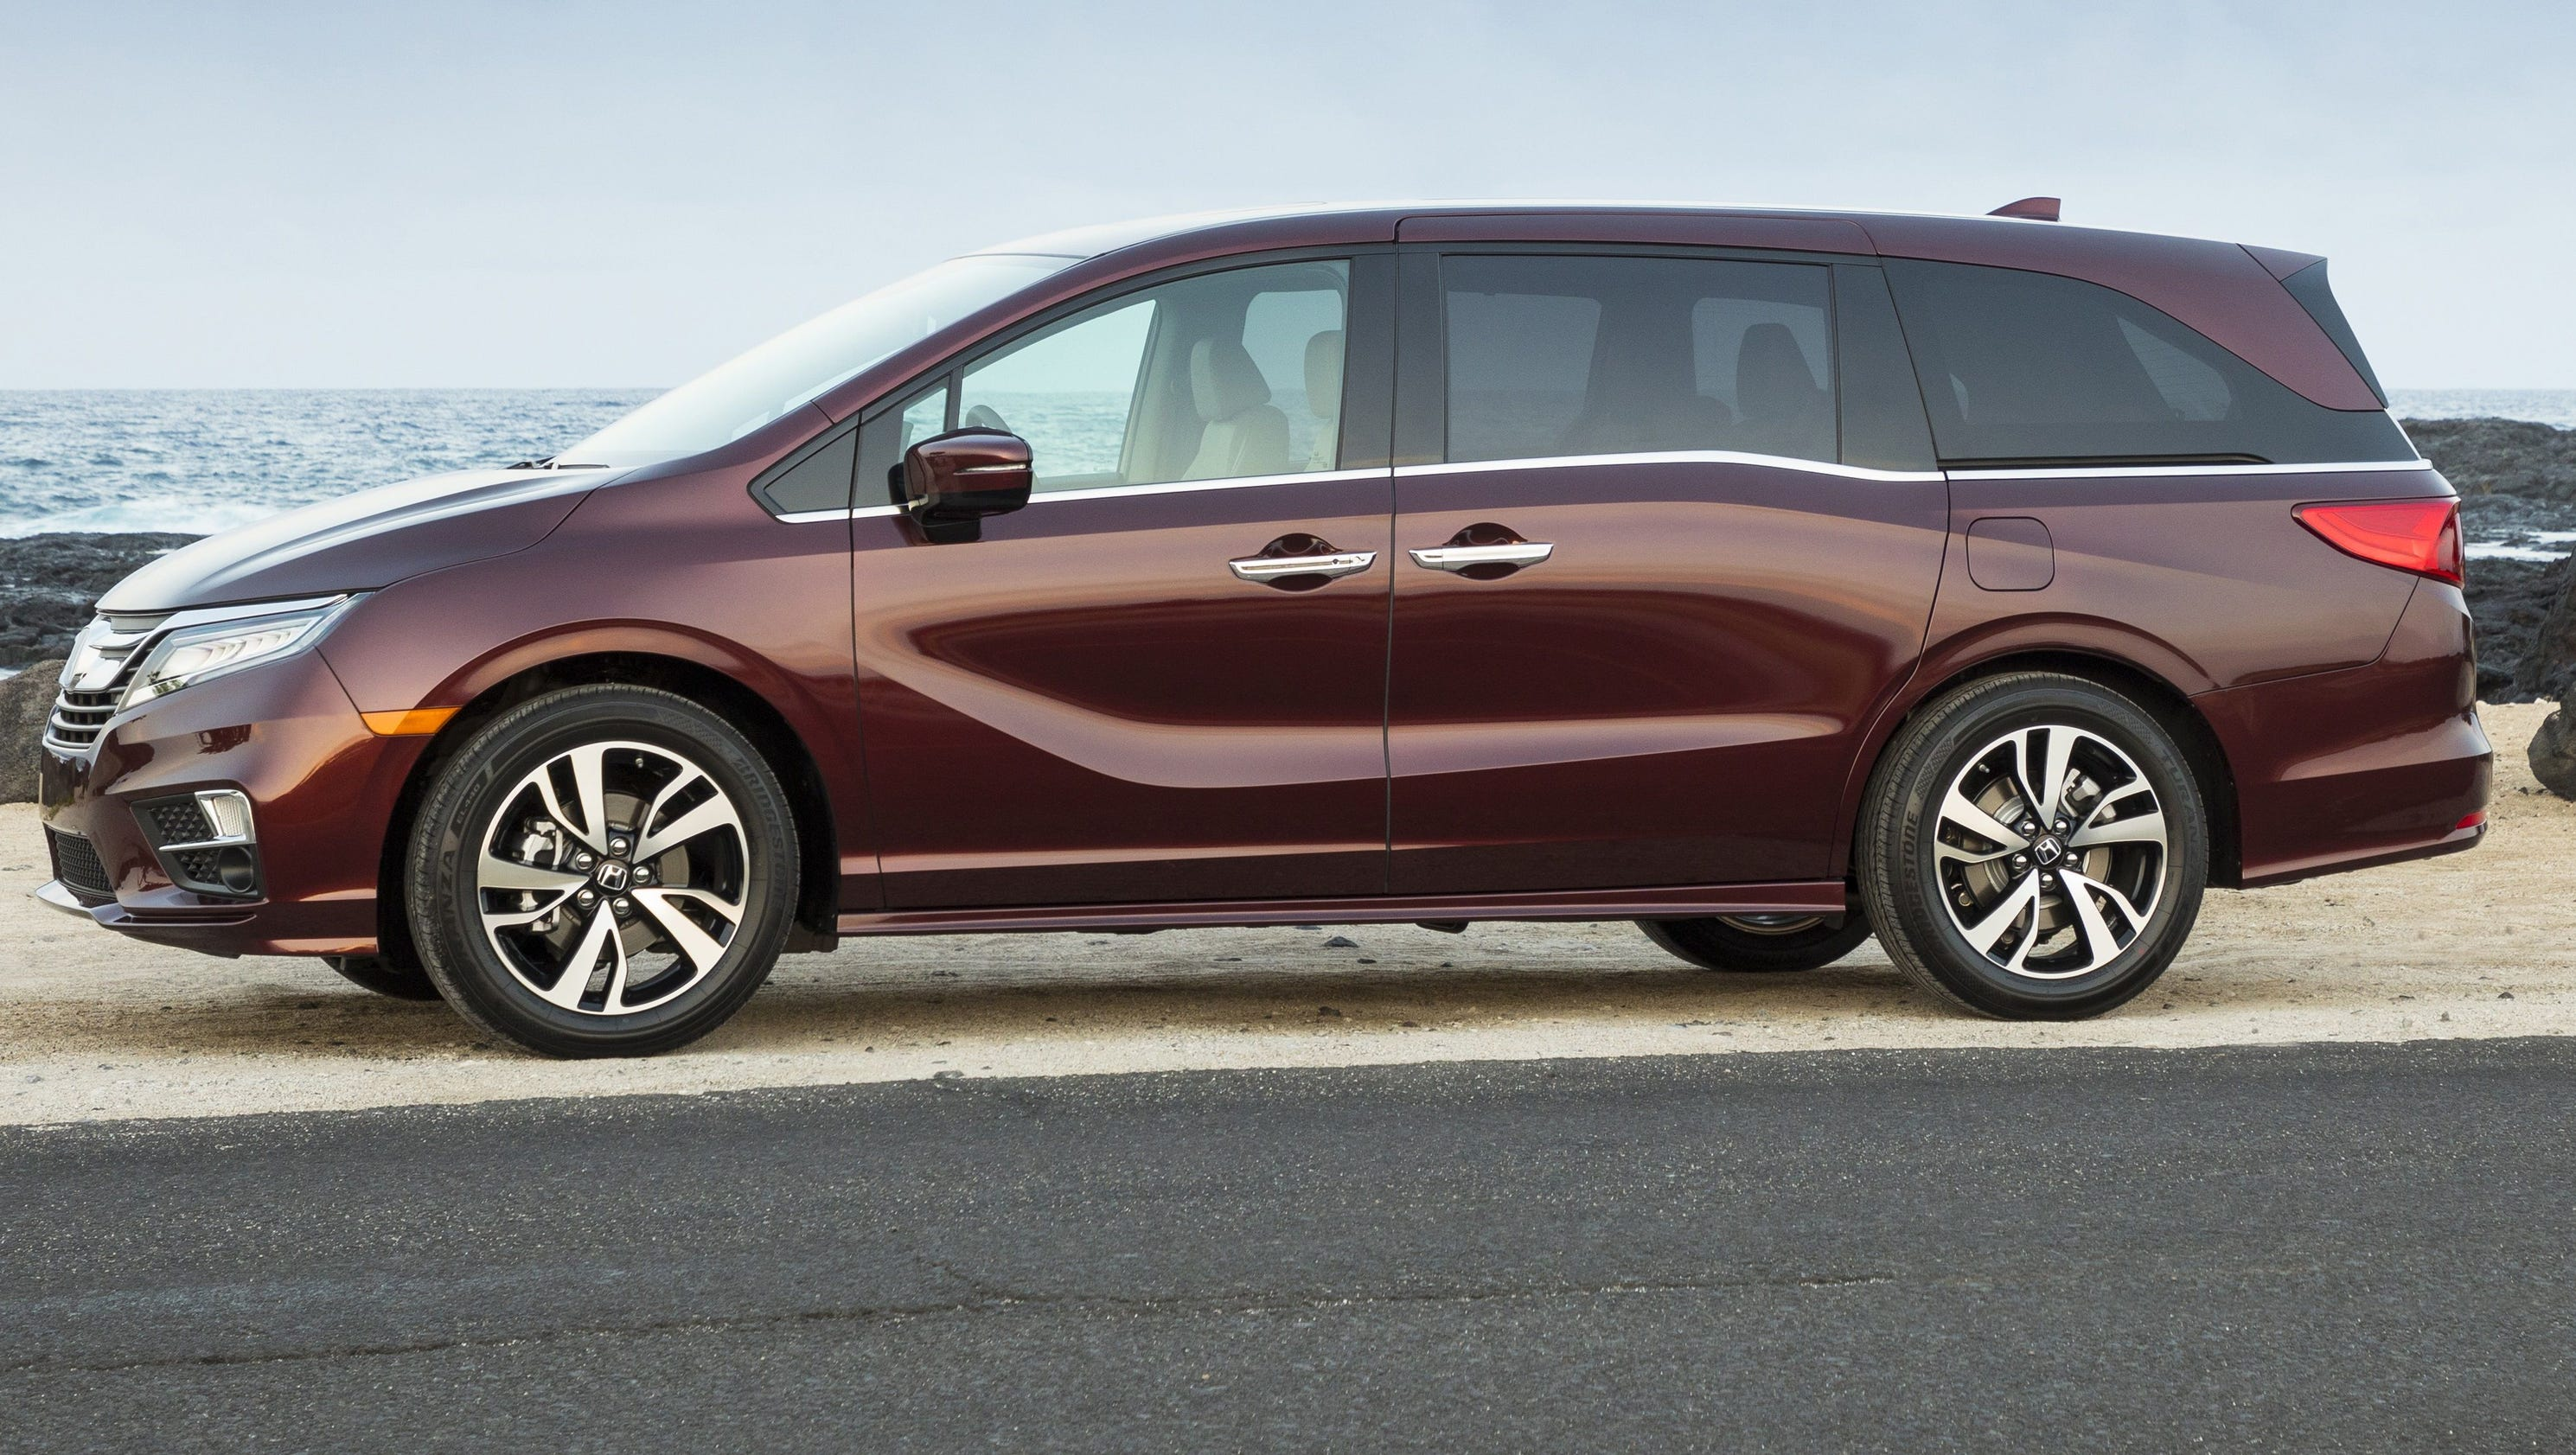 review maxi minivan honda odyssey piles on features. Black Bedroom Furniture Sets. Home Design Ideas